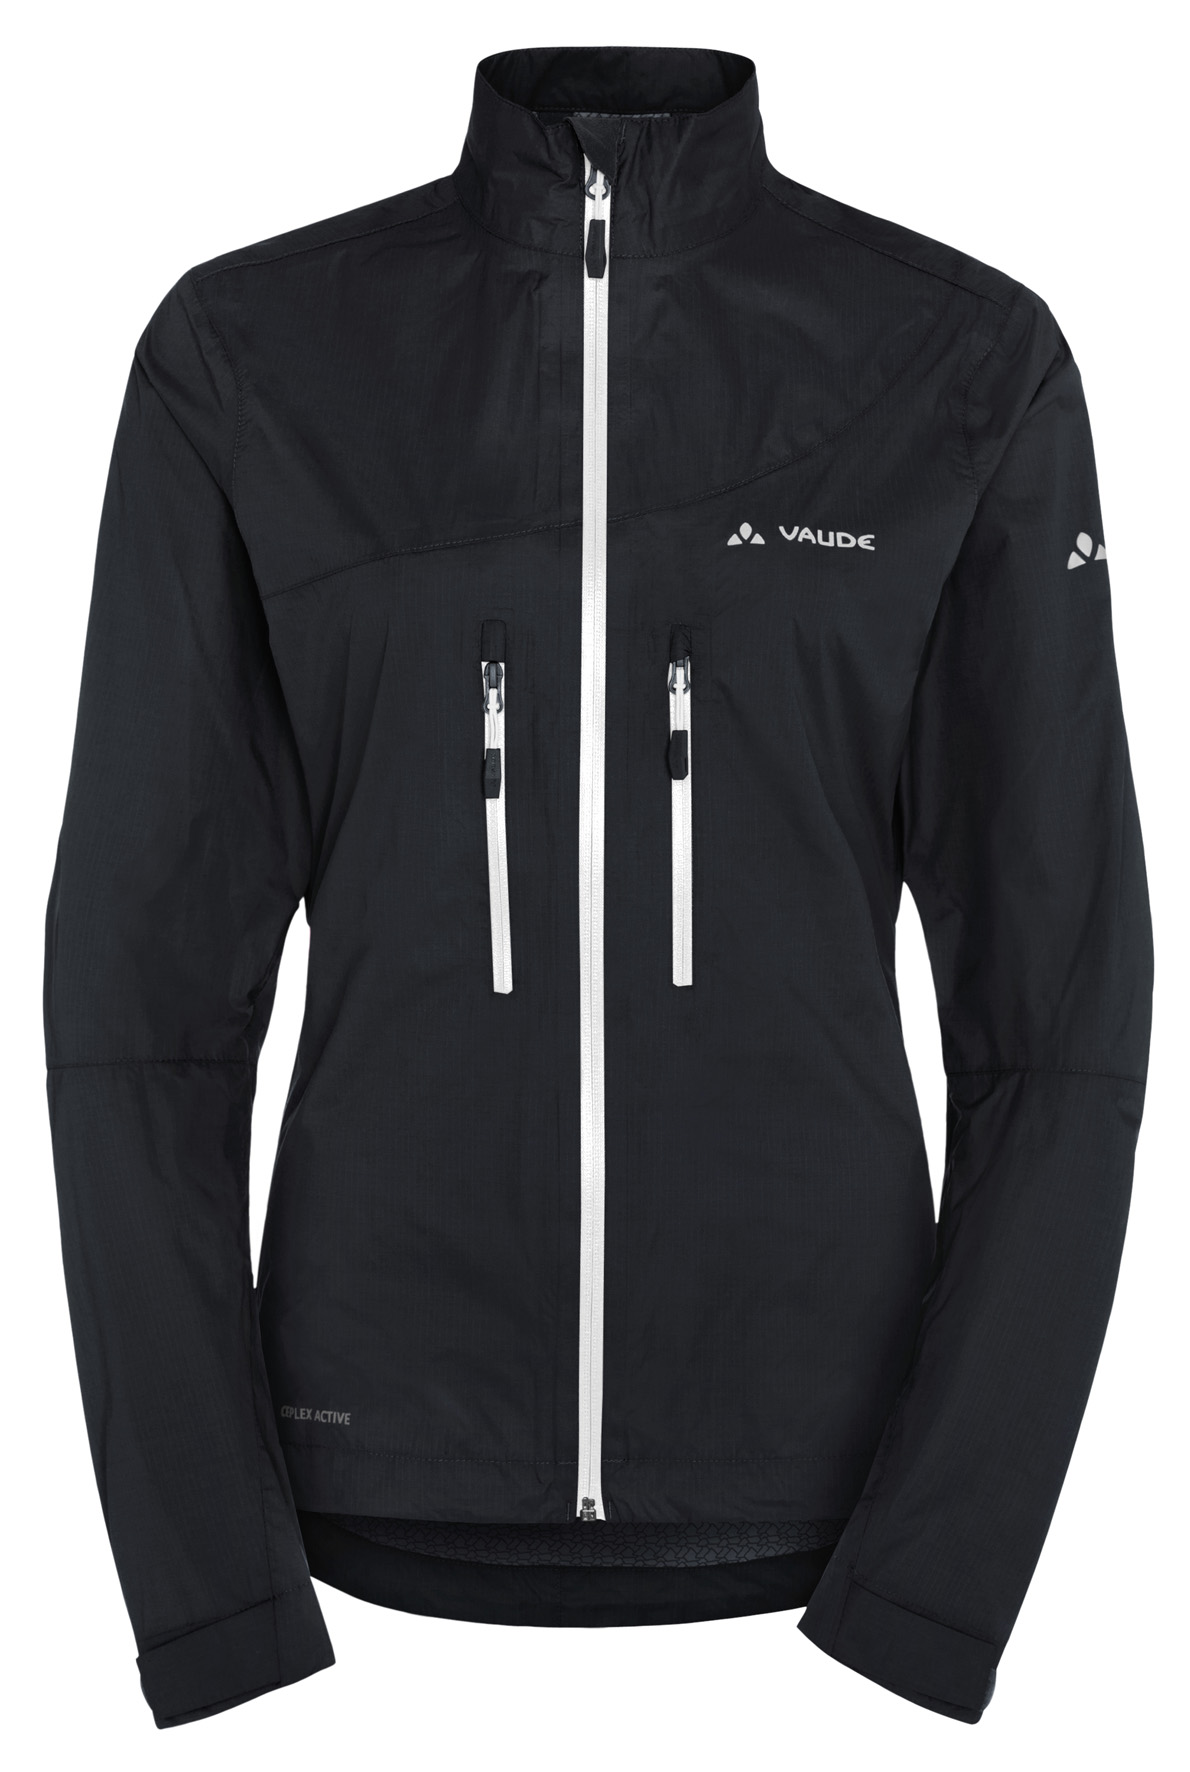 VAUDE Women´s Tremalzo Rain Jacket black Größe 36 - schneider-sports